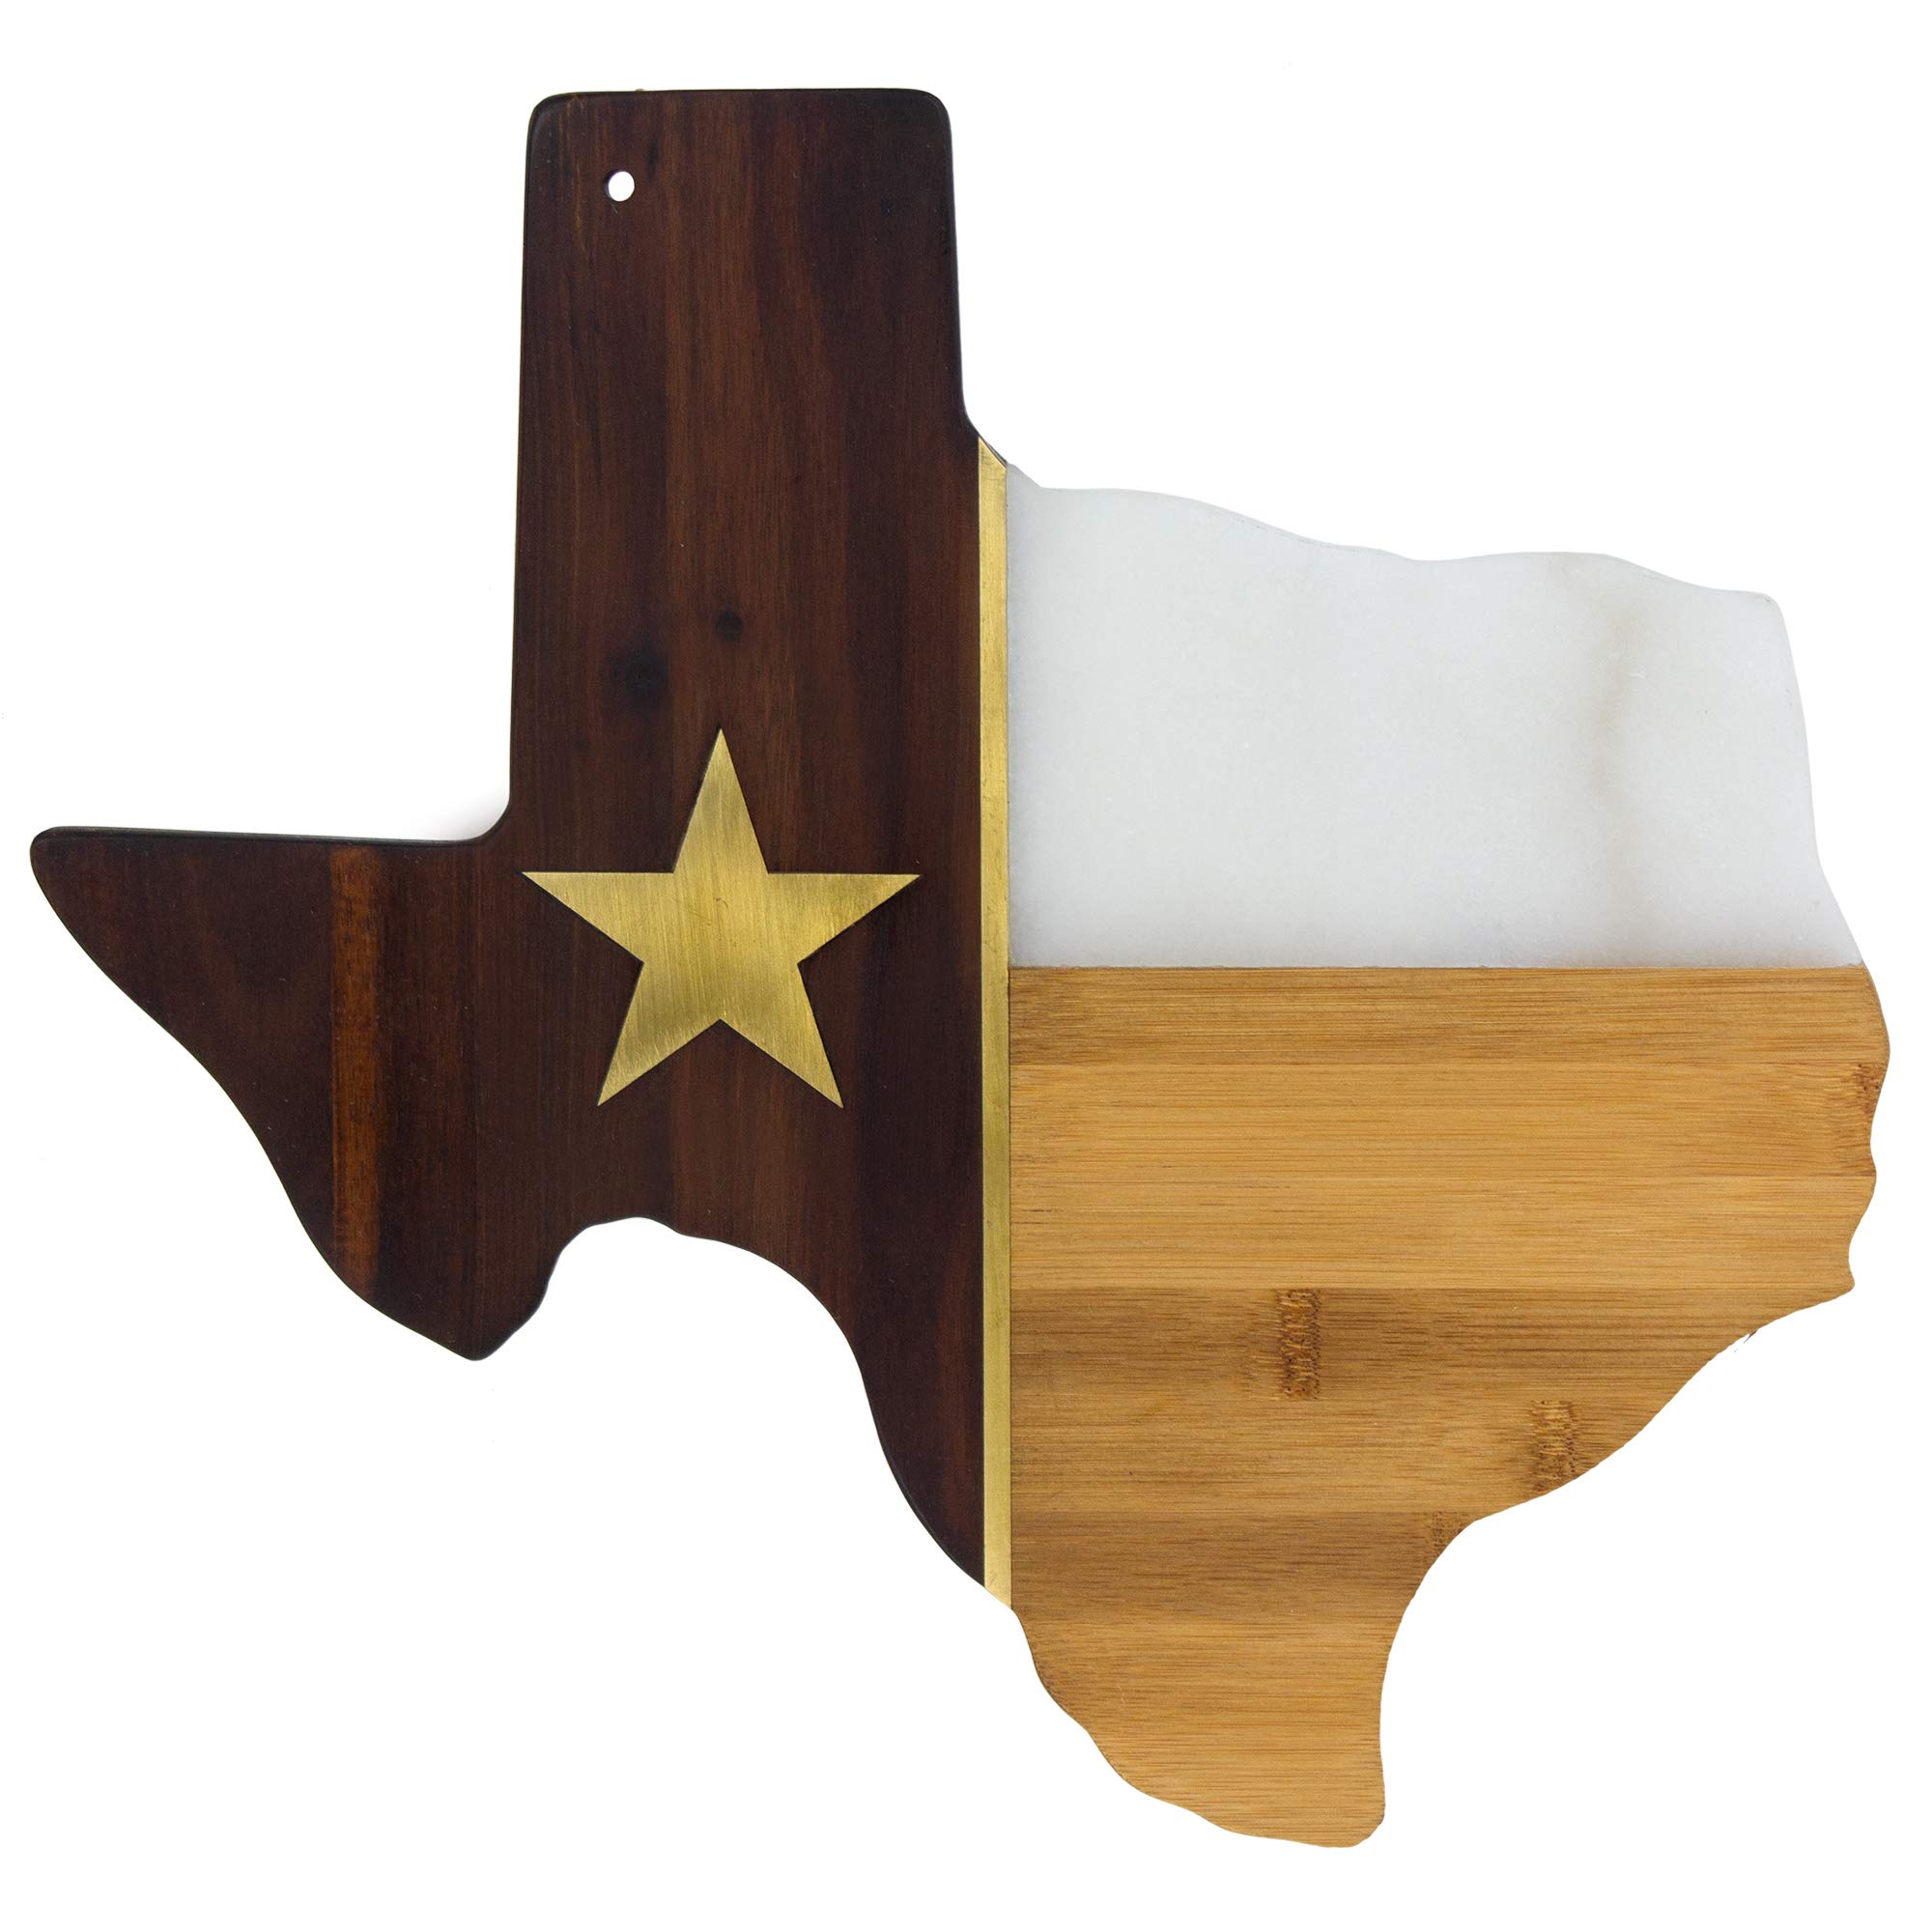 Totally Bamboo Rock & Branch Series Republic of Texas State Shaped Serving Board by Totally Bamboo (Image #1)